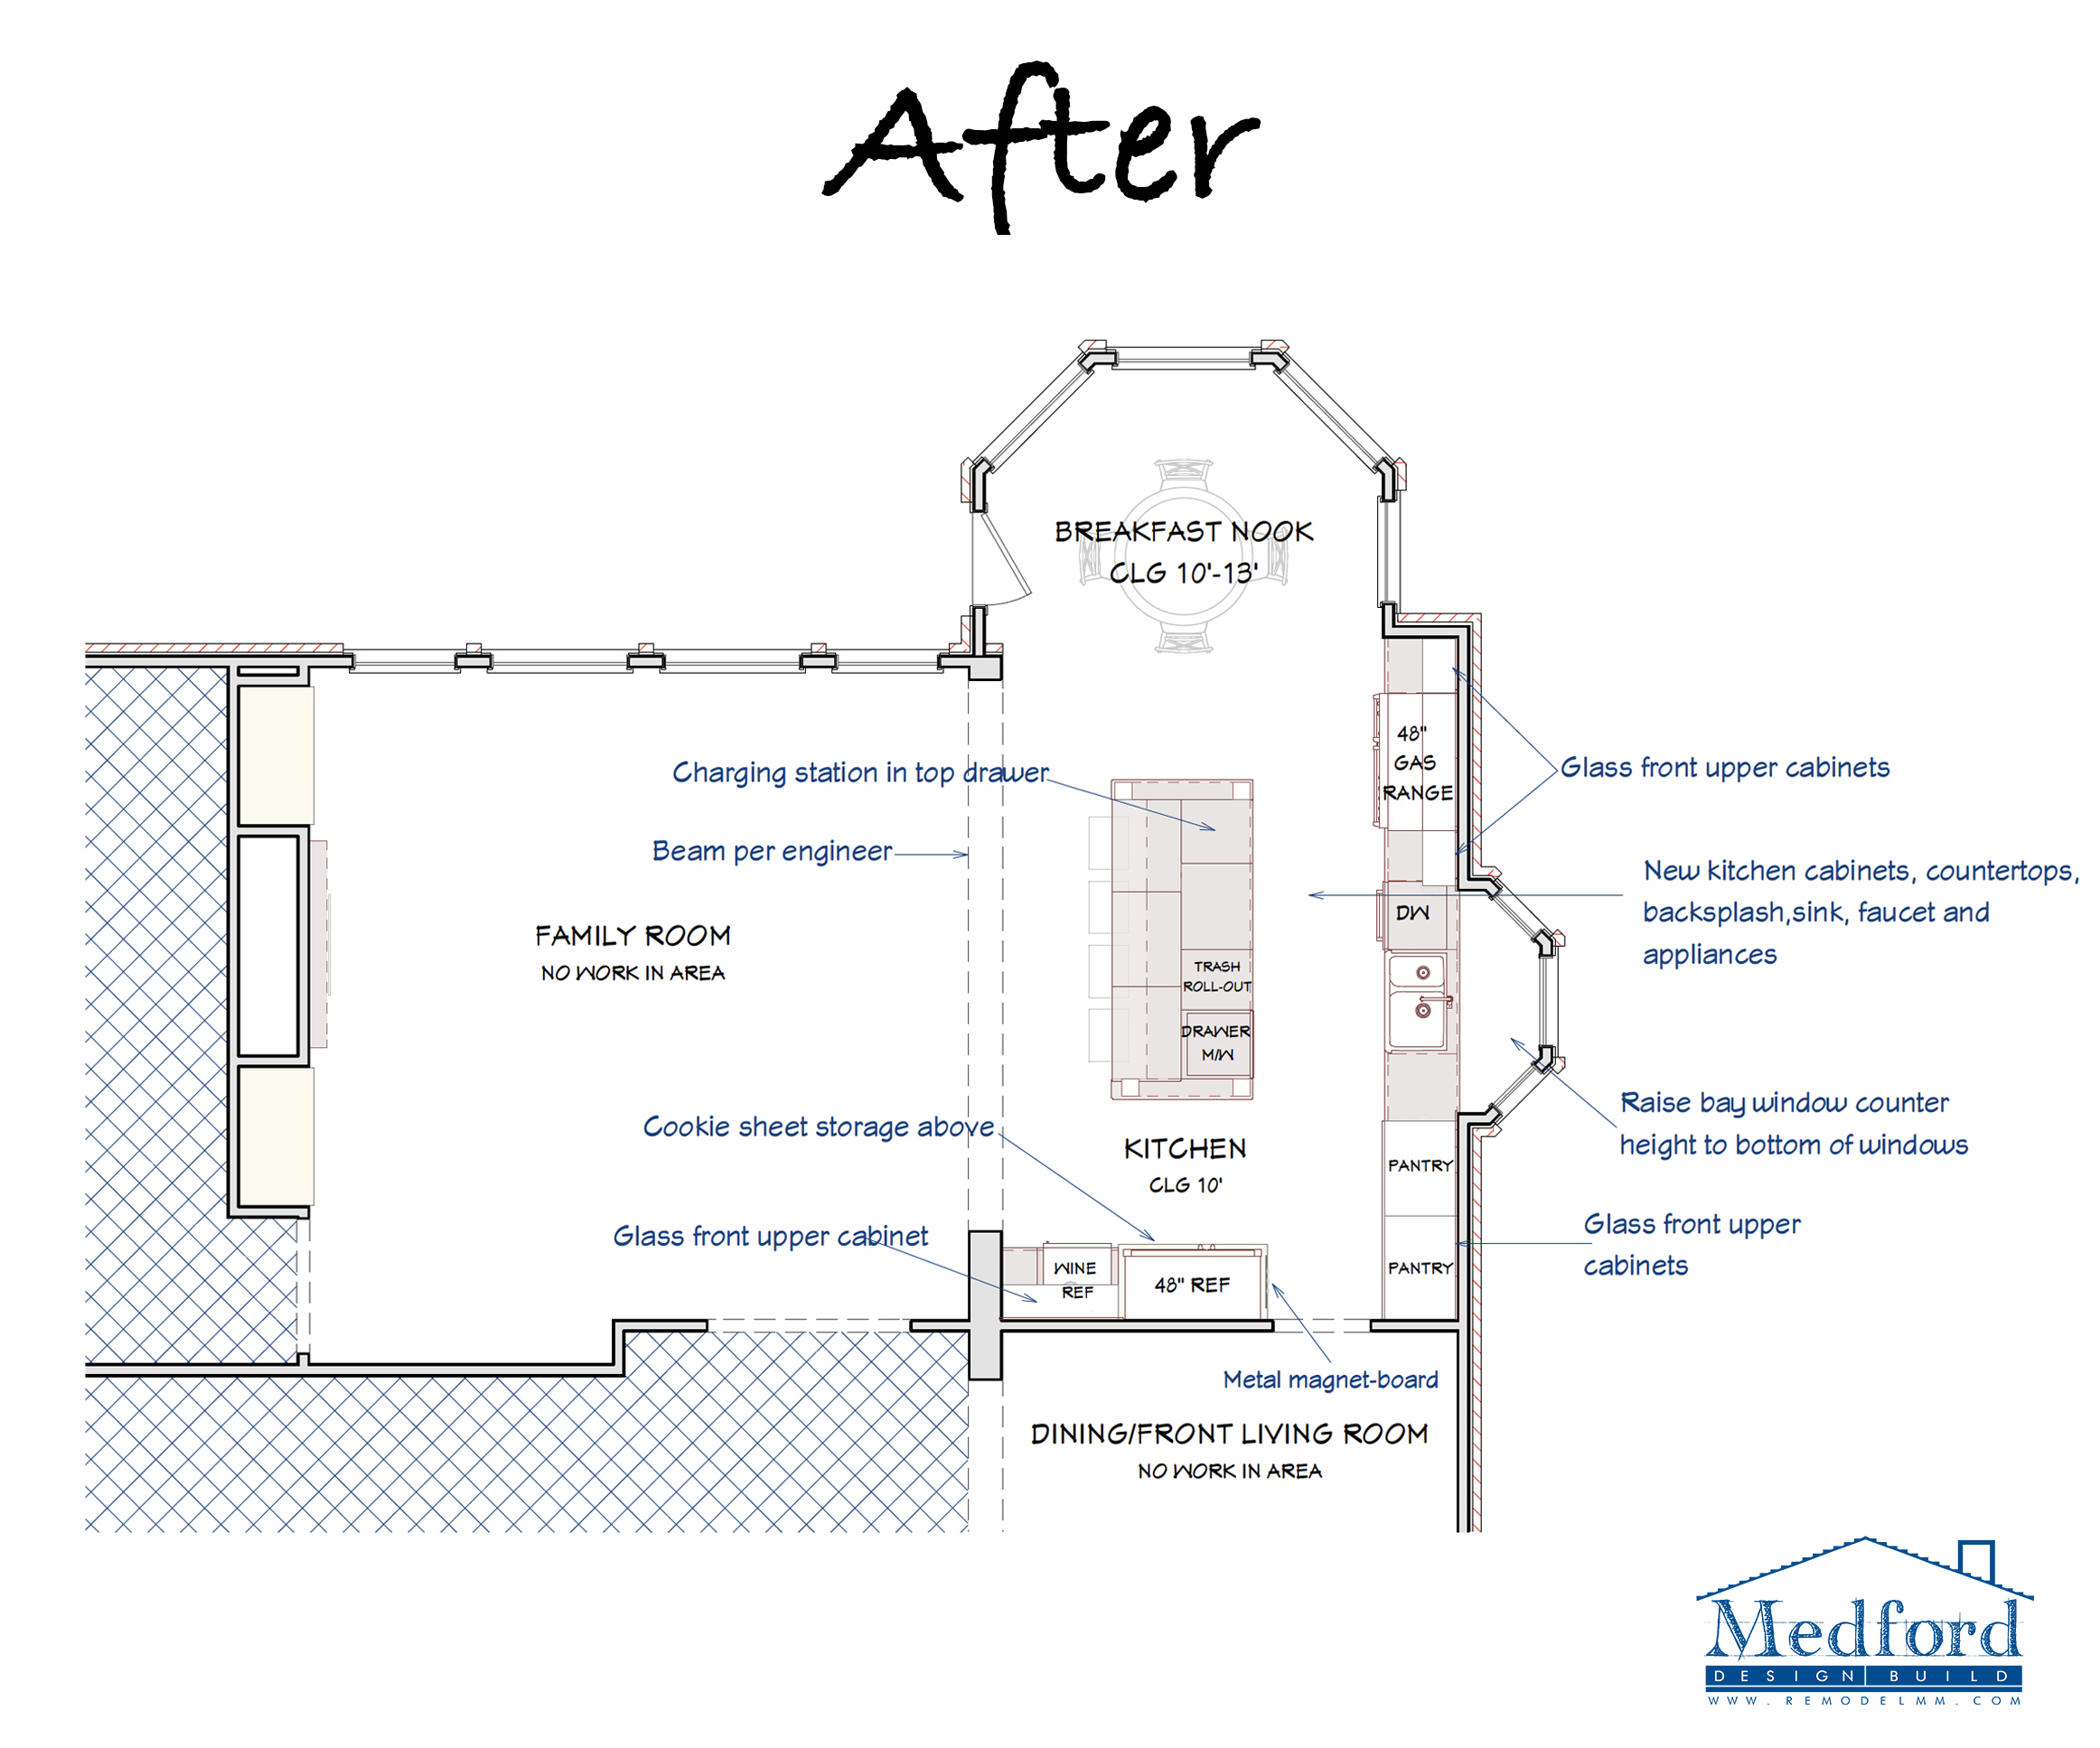 Kitchen remodel floor plan after